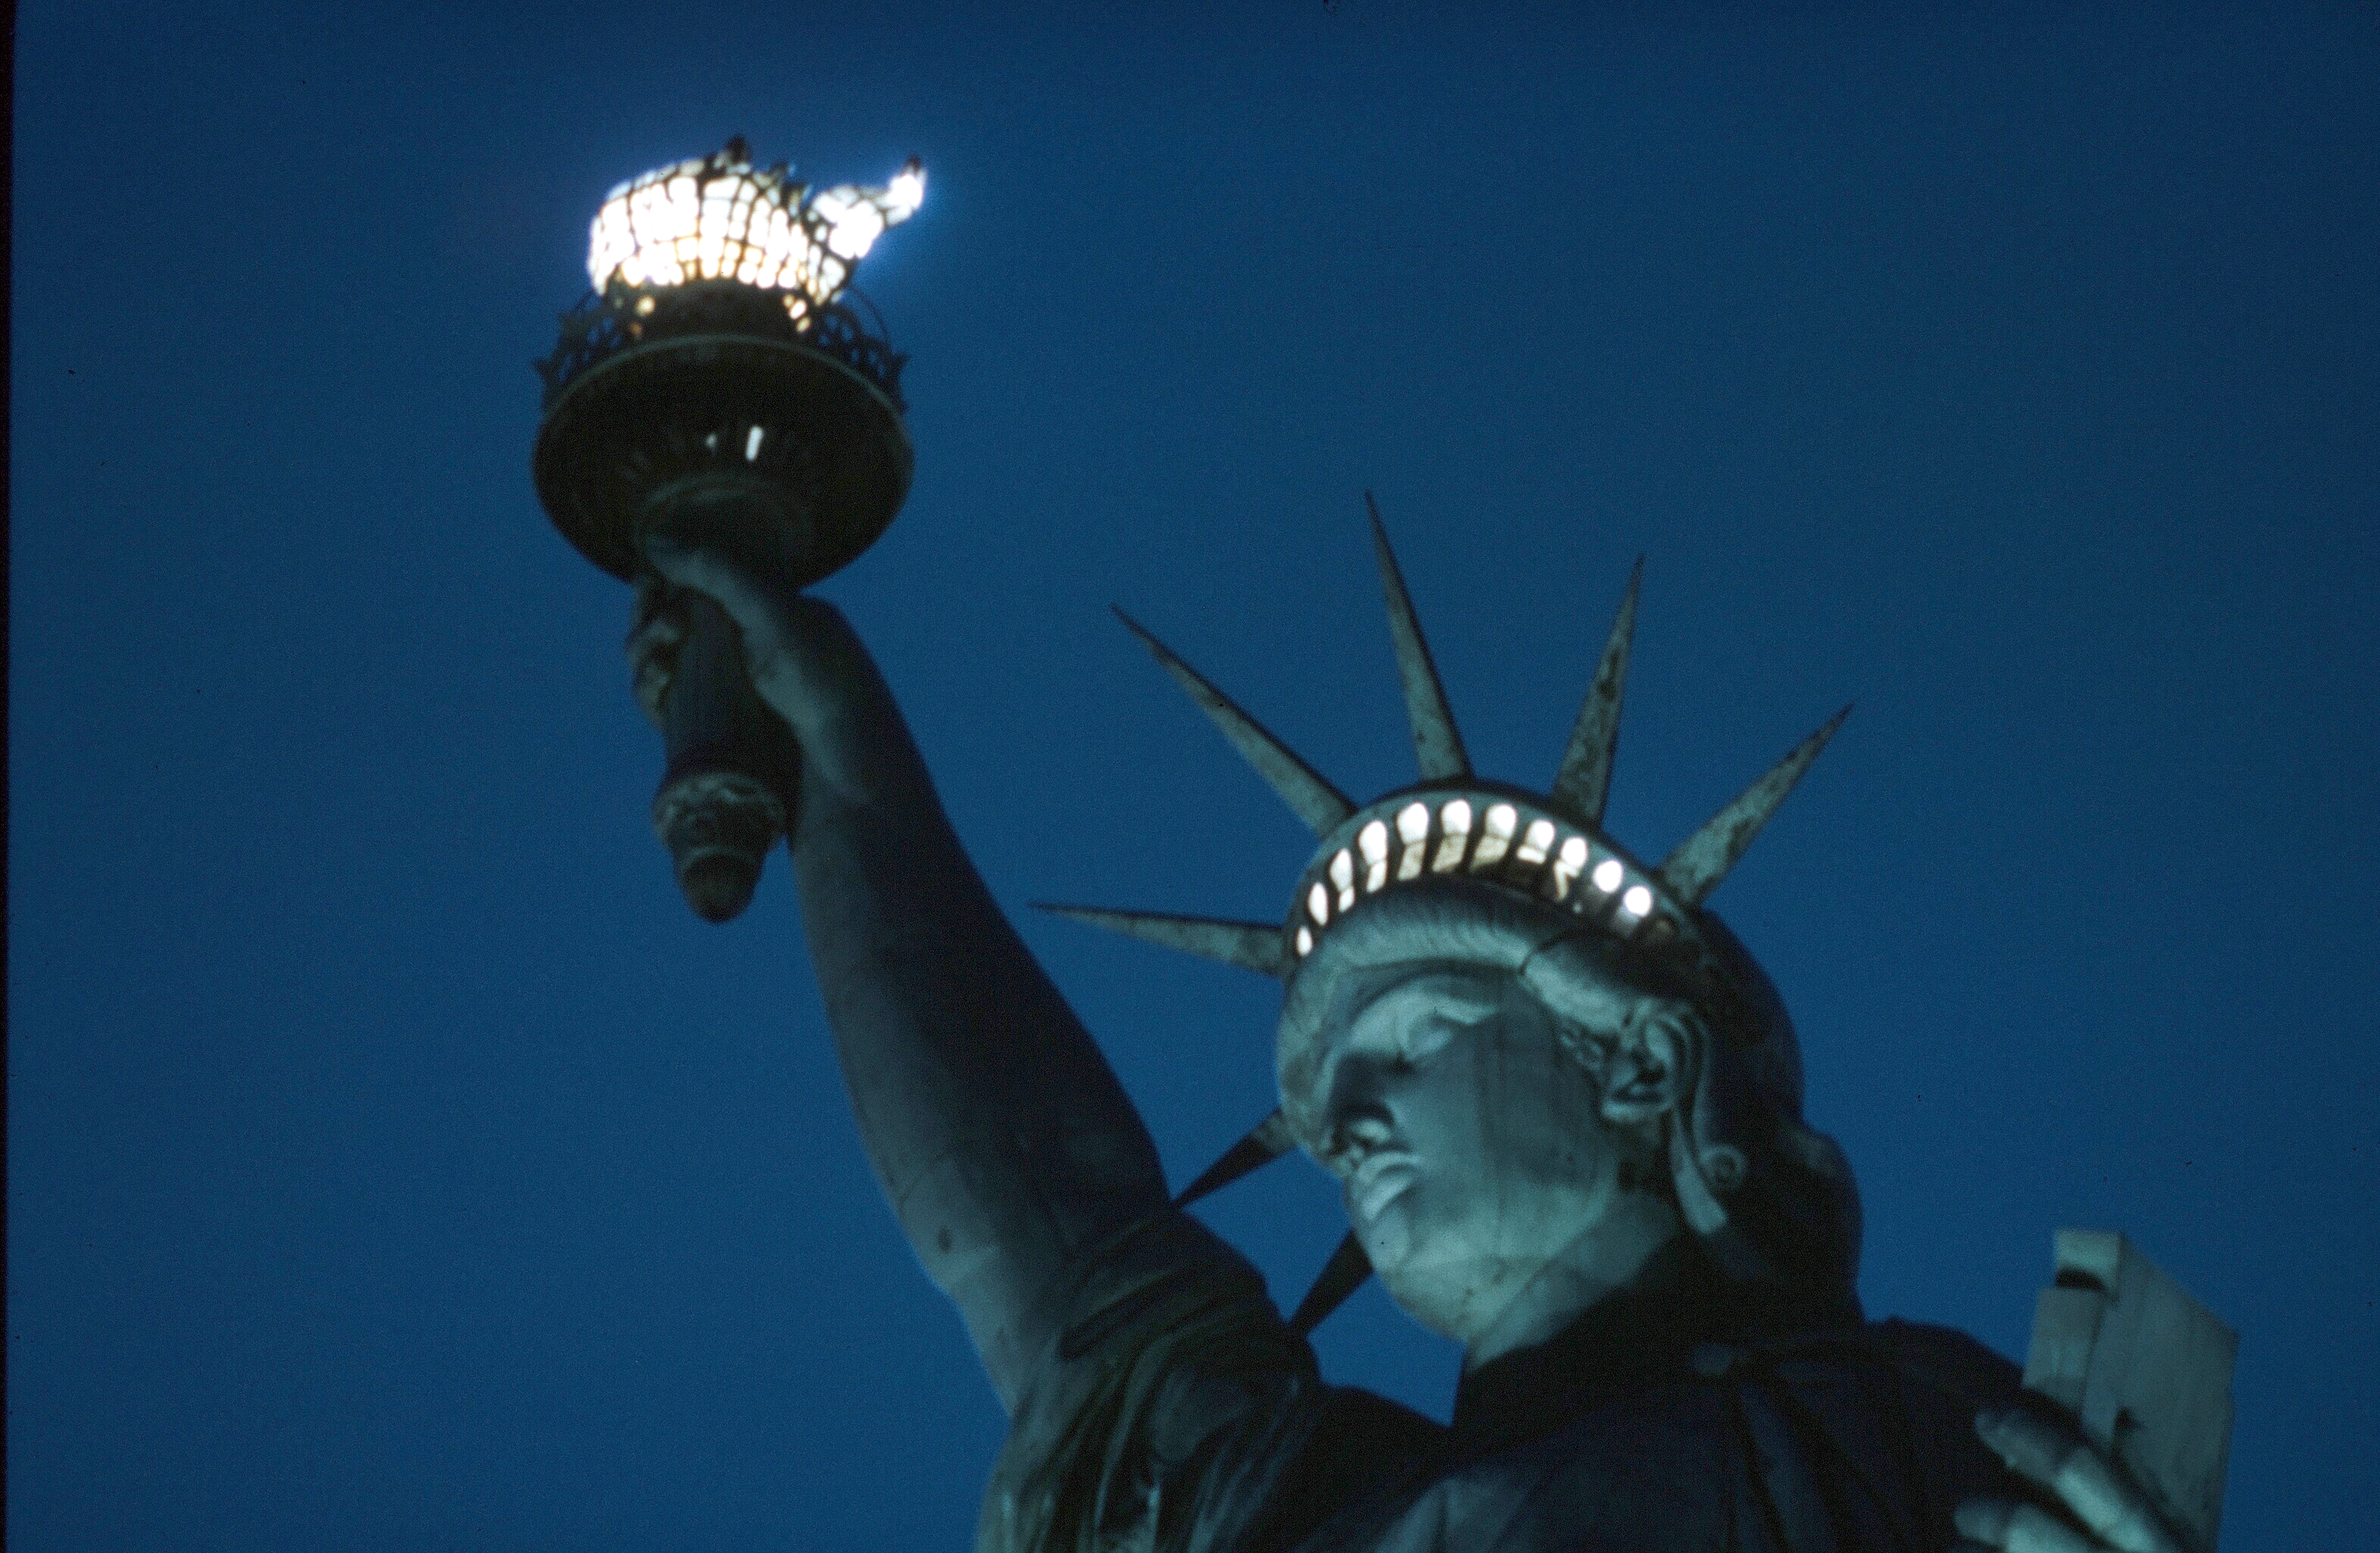 NEW YORK - JANUARY 1942: A view of the Statue of Liberty at night as the torch is lit, on Liberty Island in New York, January 1942. (Photo by Ivan Dmitri/Michael Ochs Archives/Getty Images)